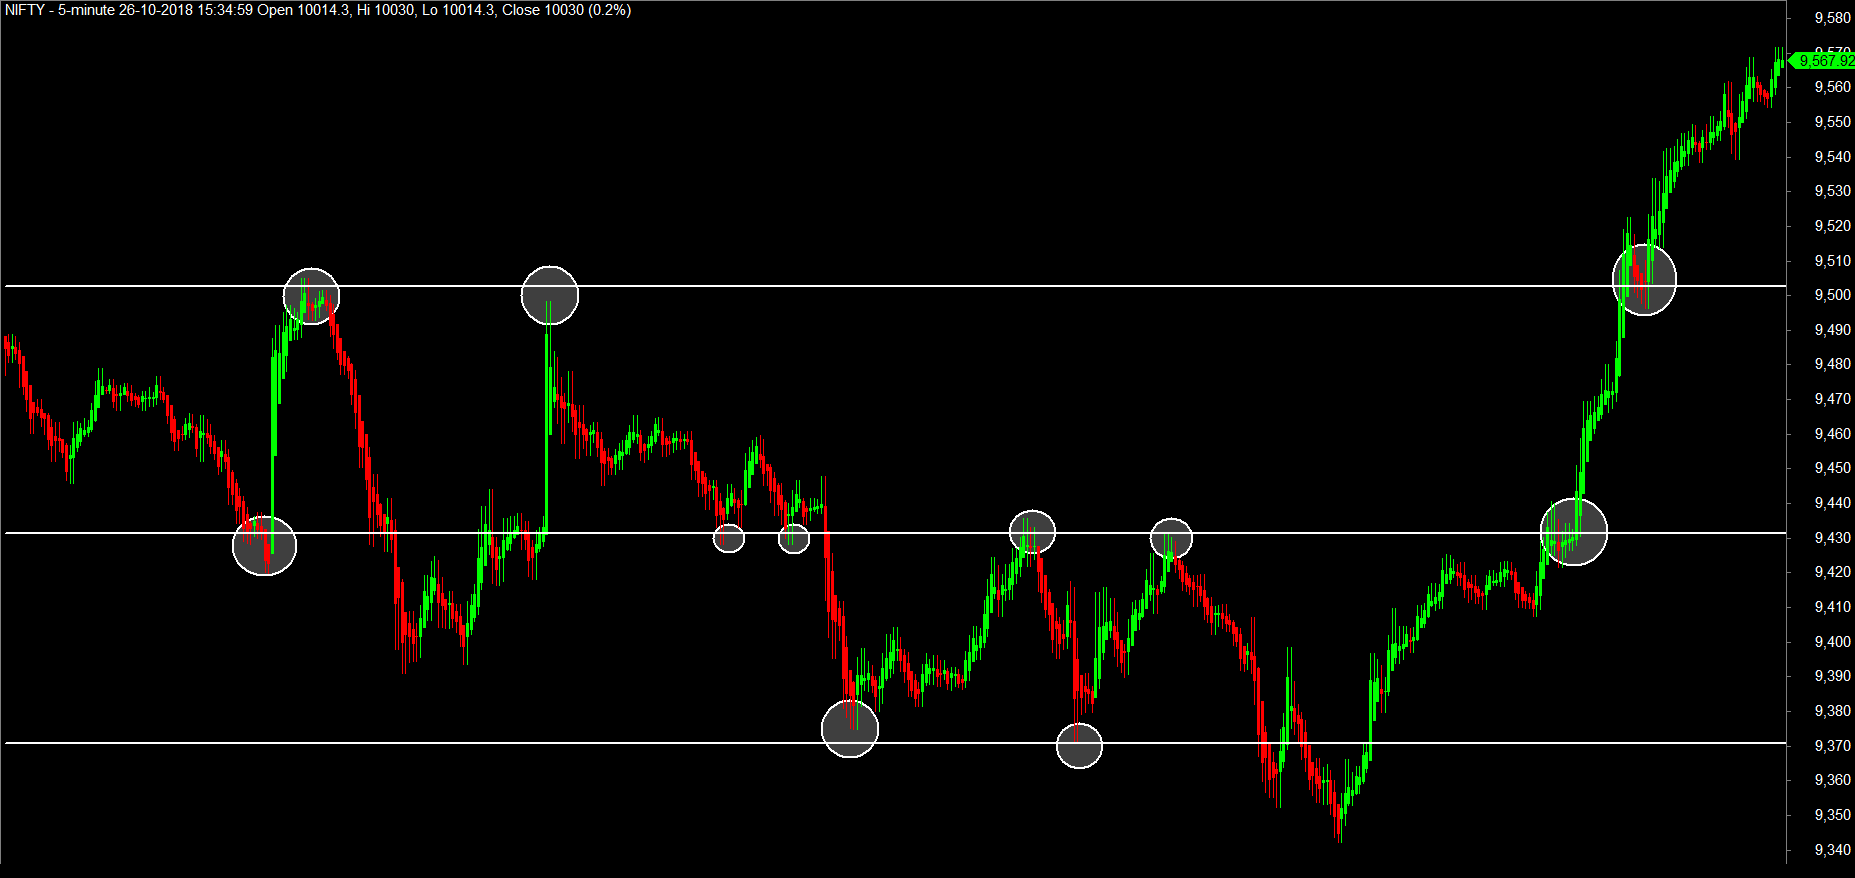 Exit strategies for intraday trading